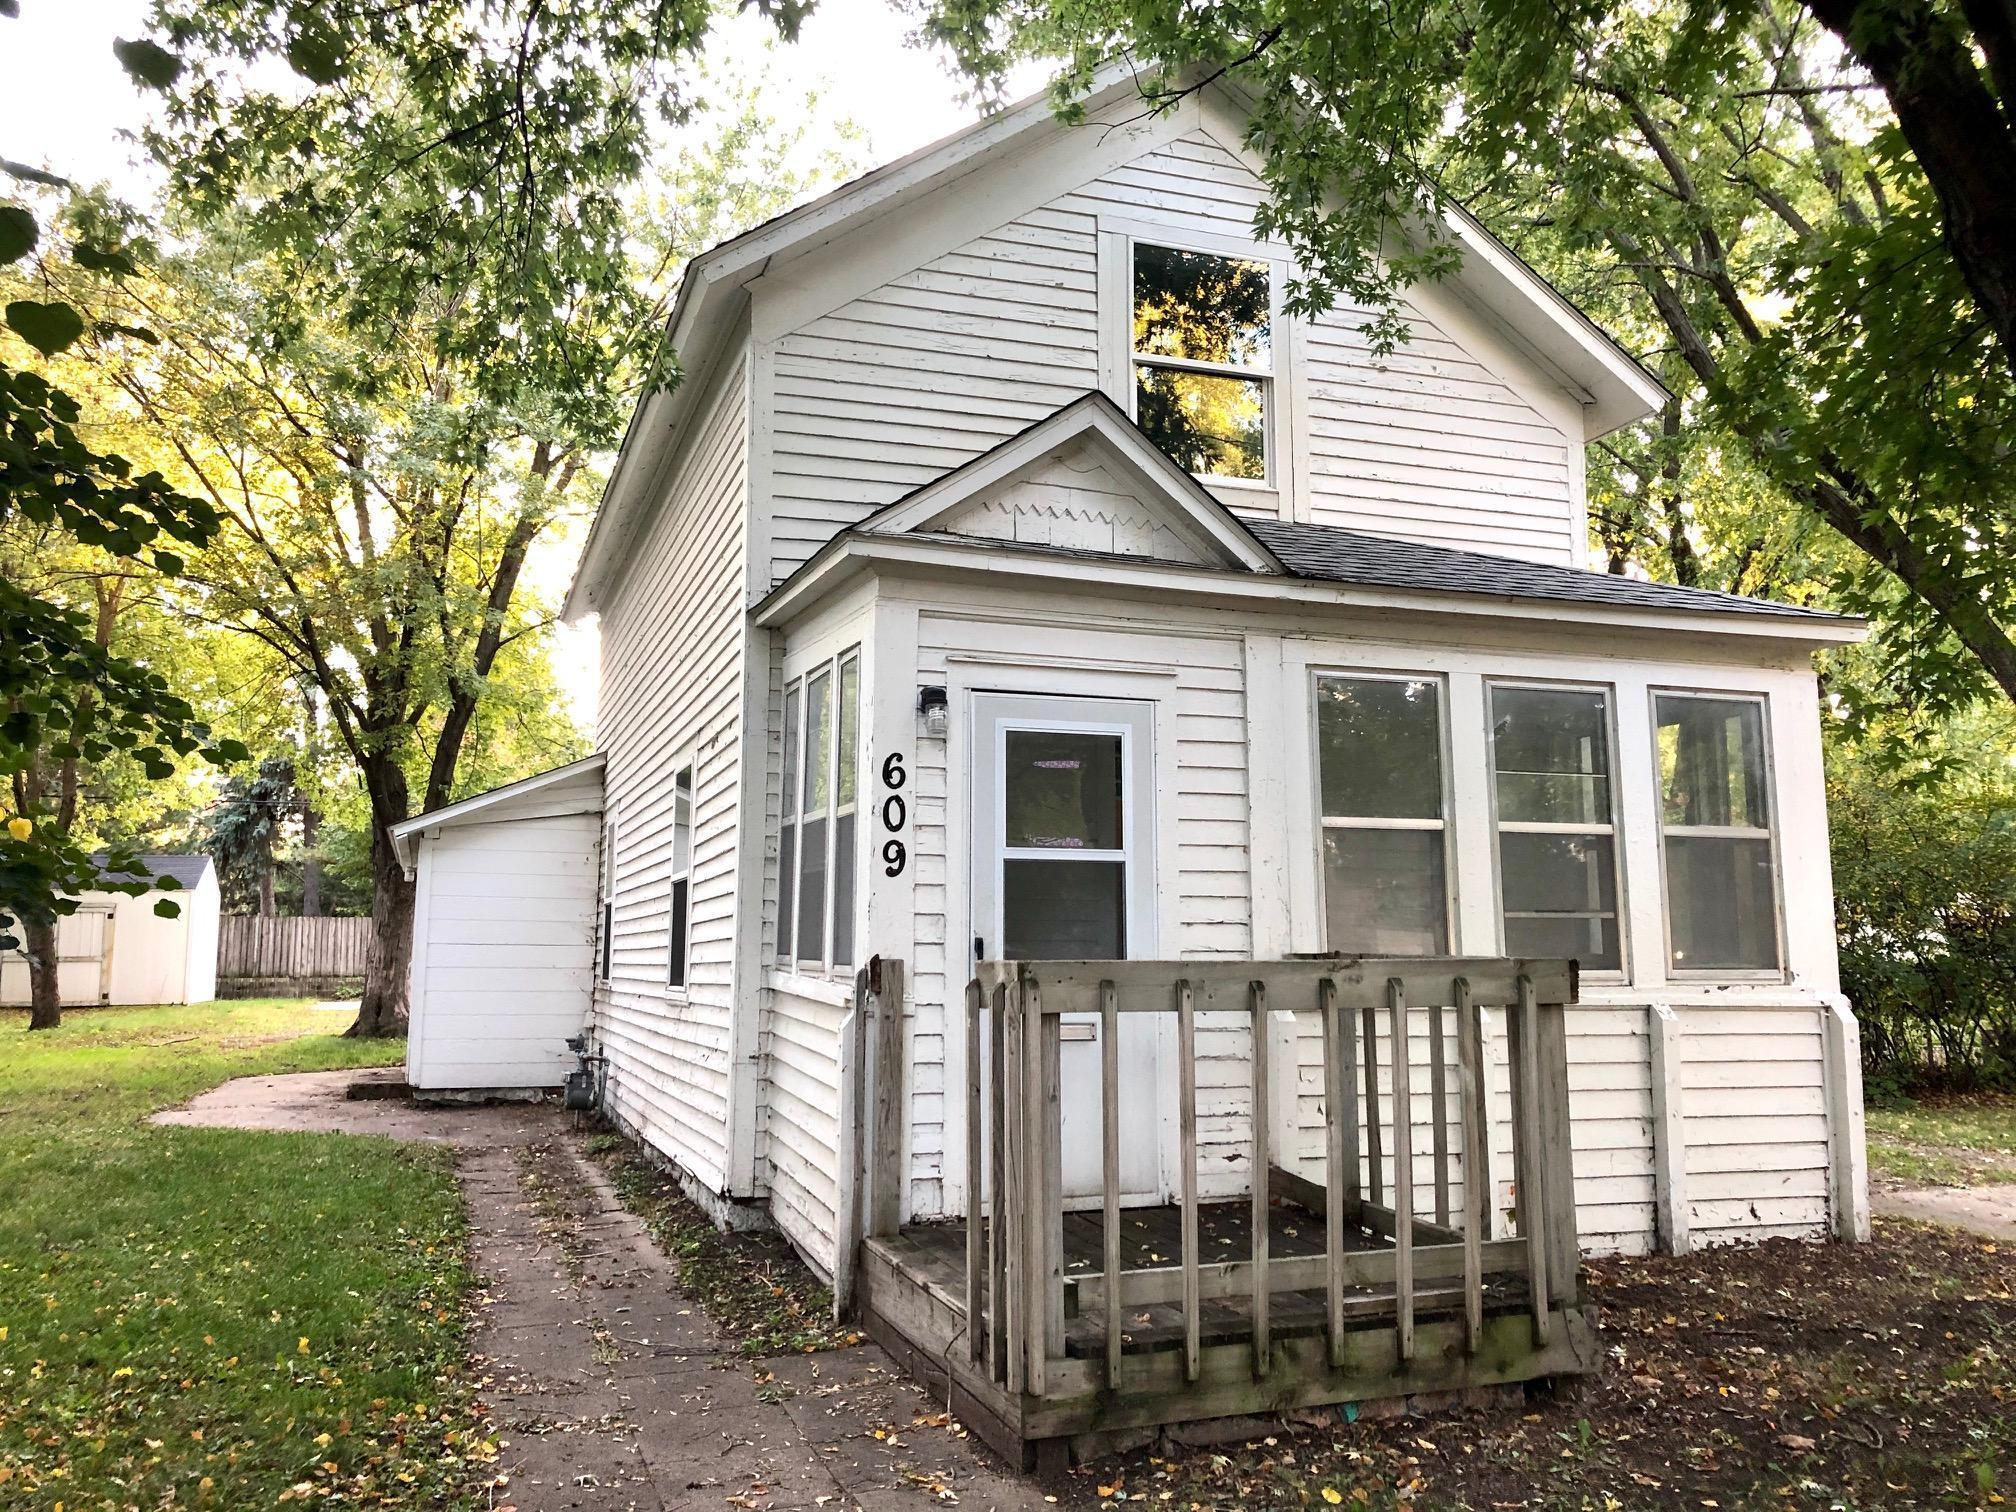 Make your mark on this 2 Bed/ 2 Bath, 1-1/2 Story Home on large lot near all the amenities St. Cloud has to offer. Close to downtown shops and restaurants and conveniently located between St. Cloud State University and St. Cloud Technical College. Home has a current rental license but is vacant for easy showing. A great investment opportunity or first-time home Buyer. 18 x 22 vinyl sided detached garage and two additional storage sheds. Don't miss out!